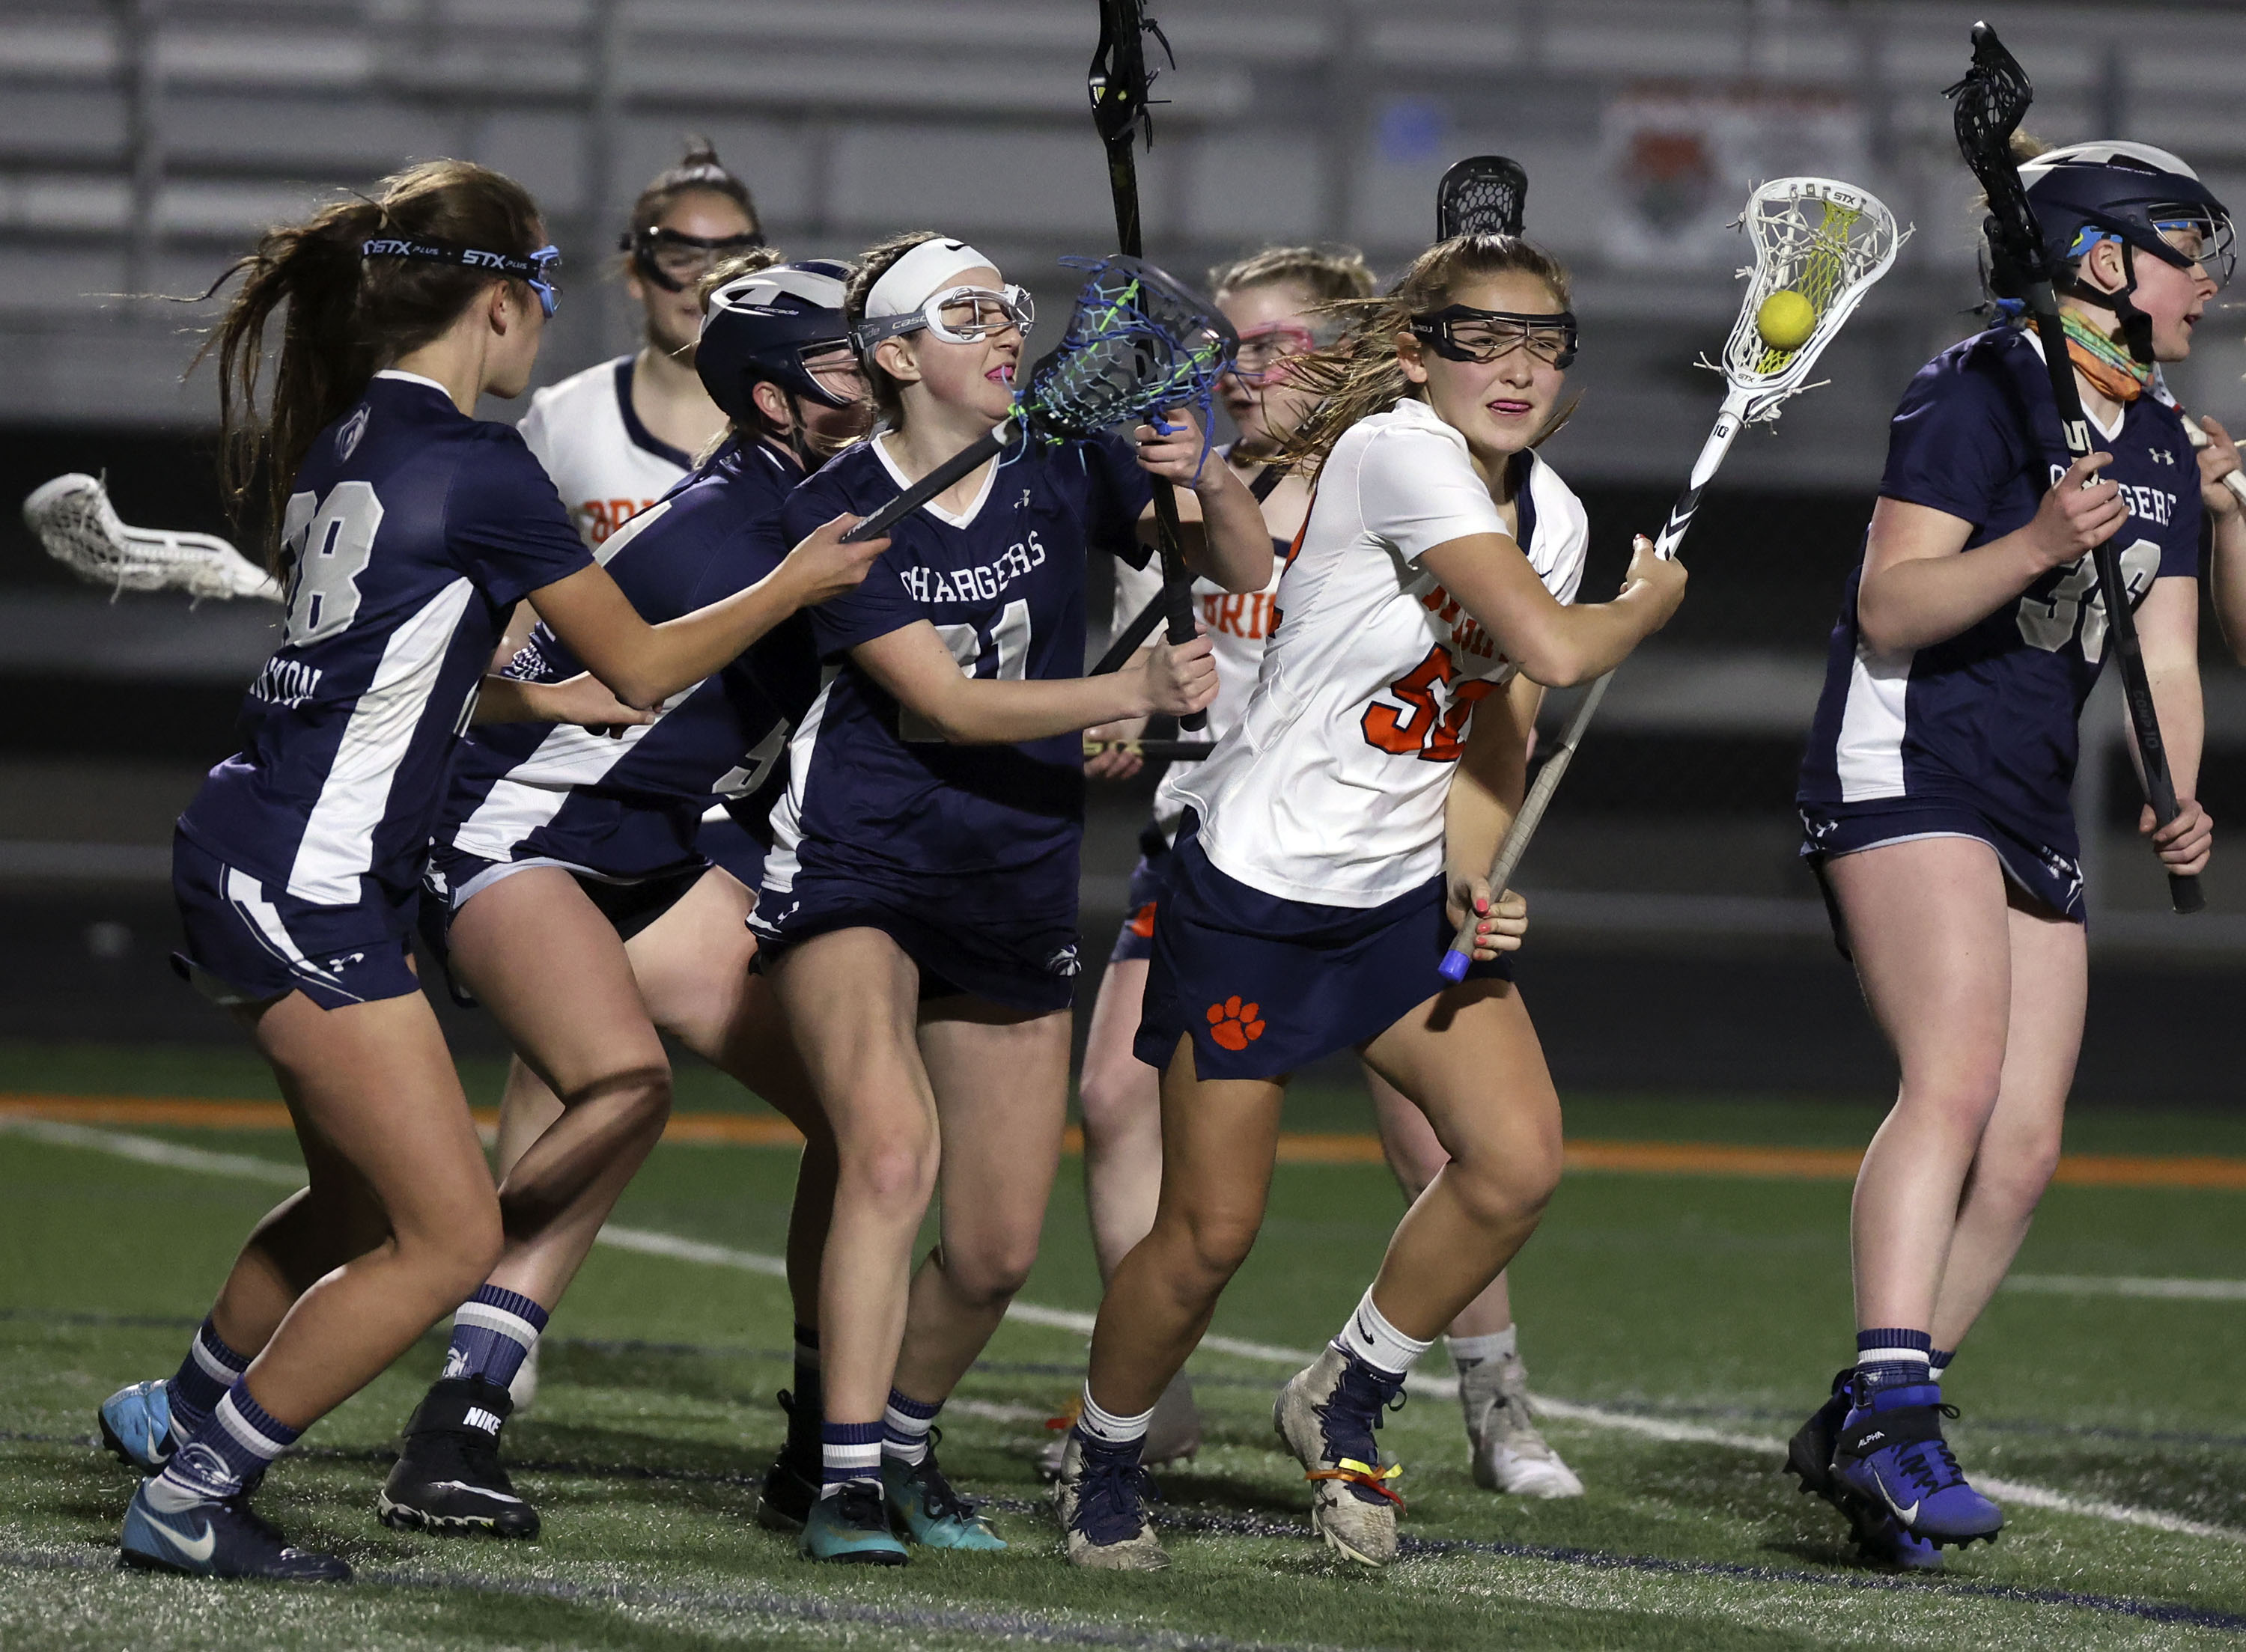 Brighton plays Corner Canyon in a girls lacrosse game at Brighton High School in Cottonwood Heights on Friday, March 19, 2021. Brighton won 16-6.